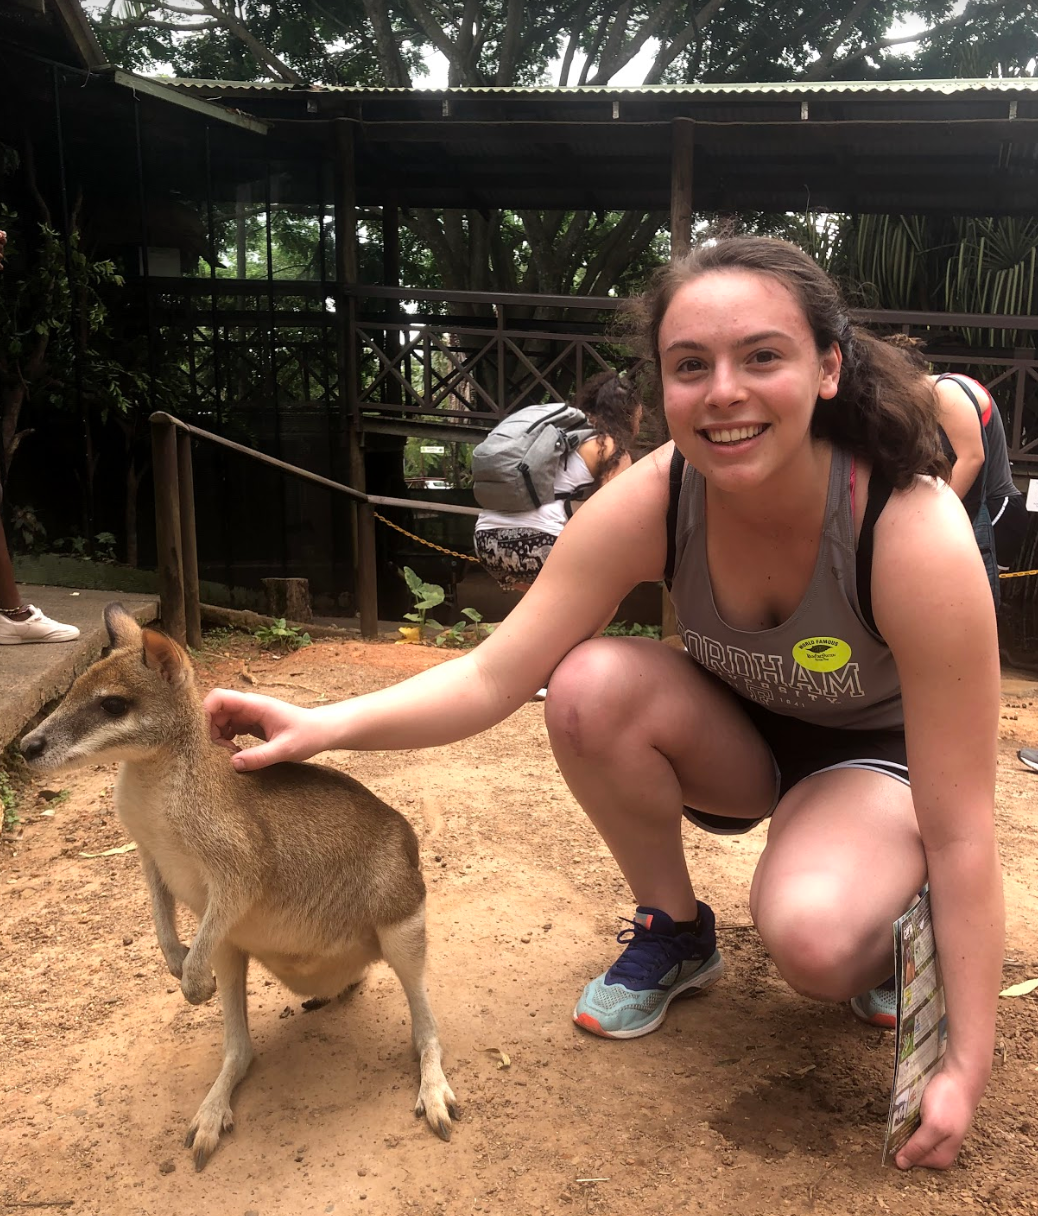 Casale chose Australia because she wanted to study abroad in a country she'd never get to visit otherwise.